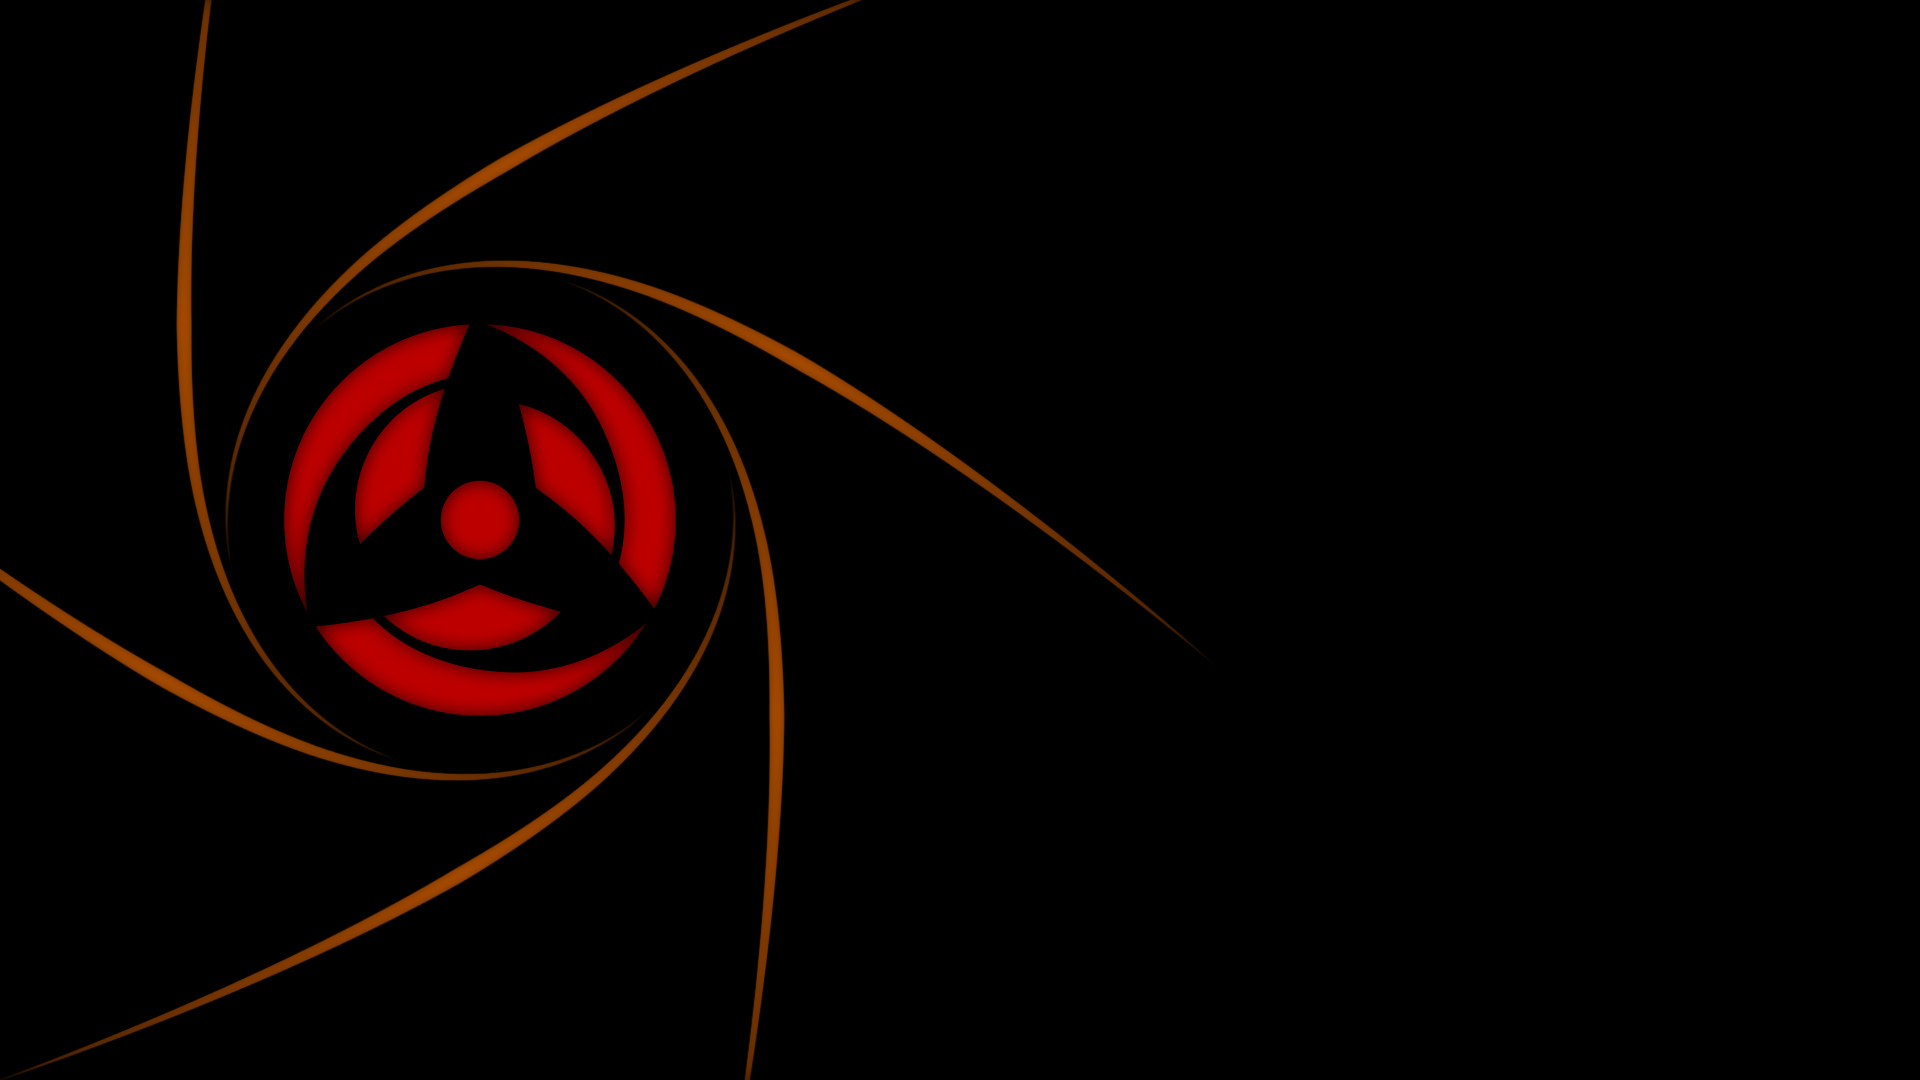 Sharingan Wallpaper Hd 1920x1080 65 Images